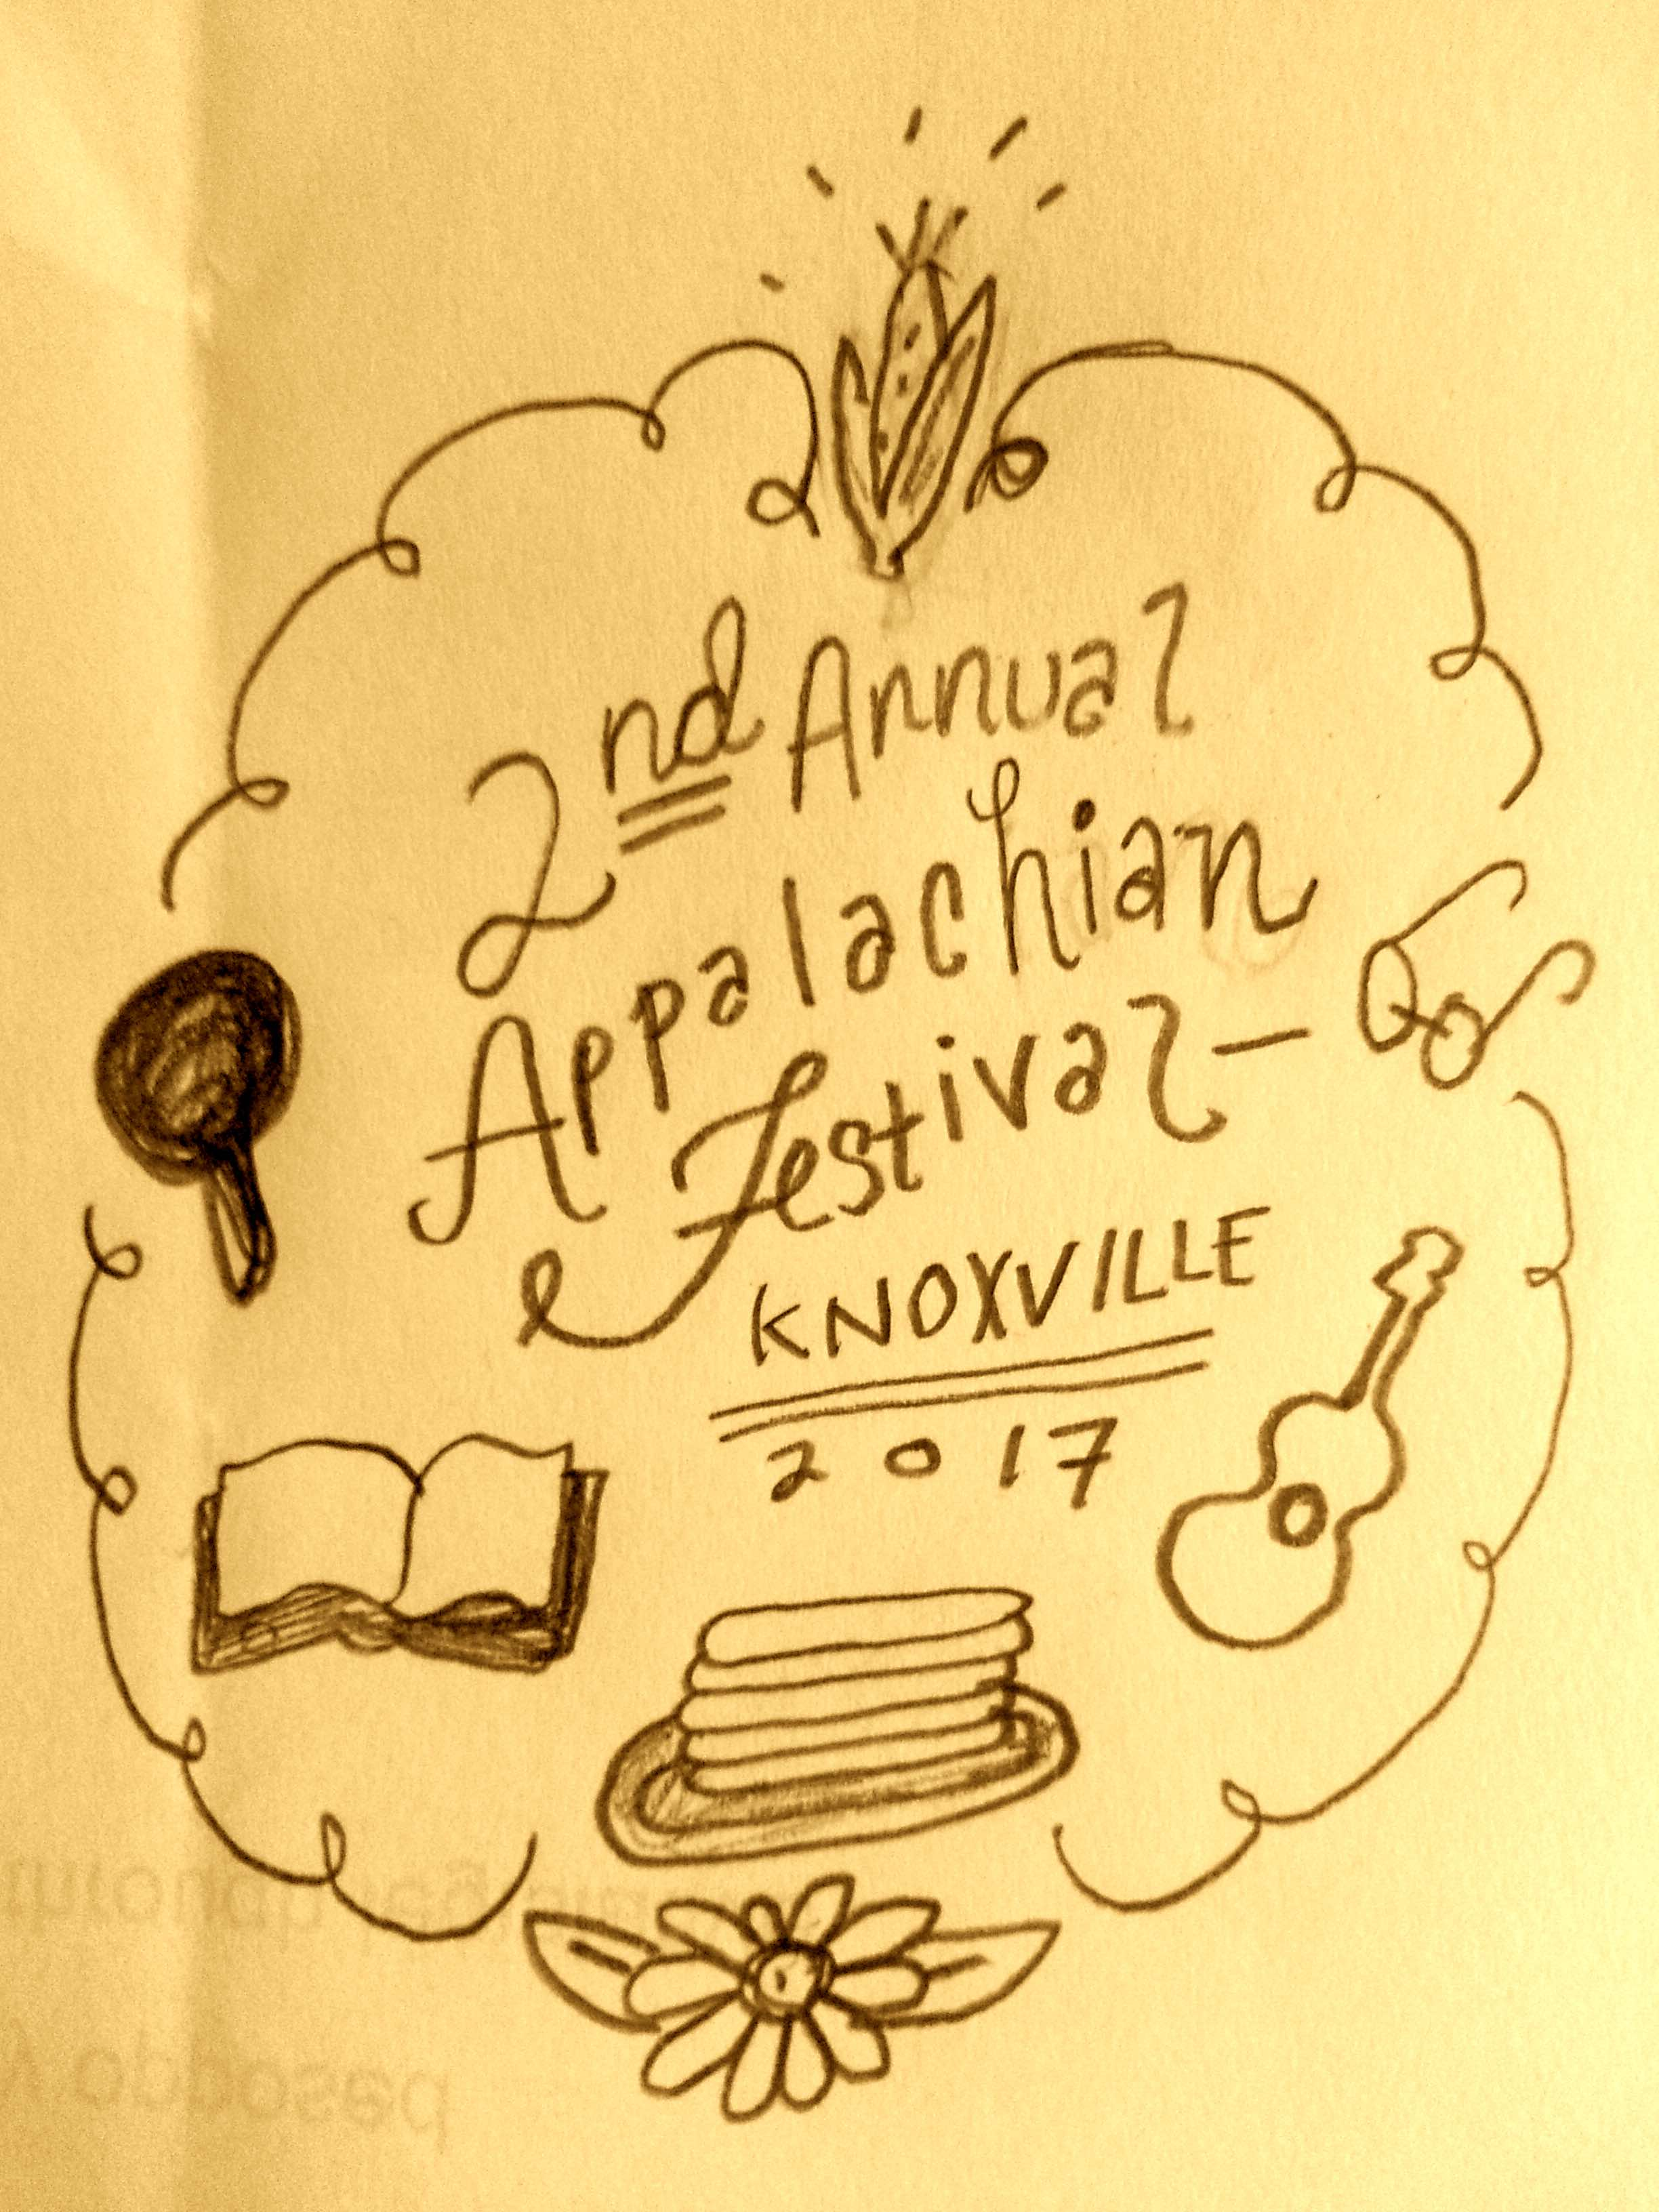 Illustration drawn to describe the 2nd Appalachian Festival, Knoxville by Amy Campbell